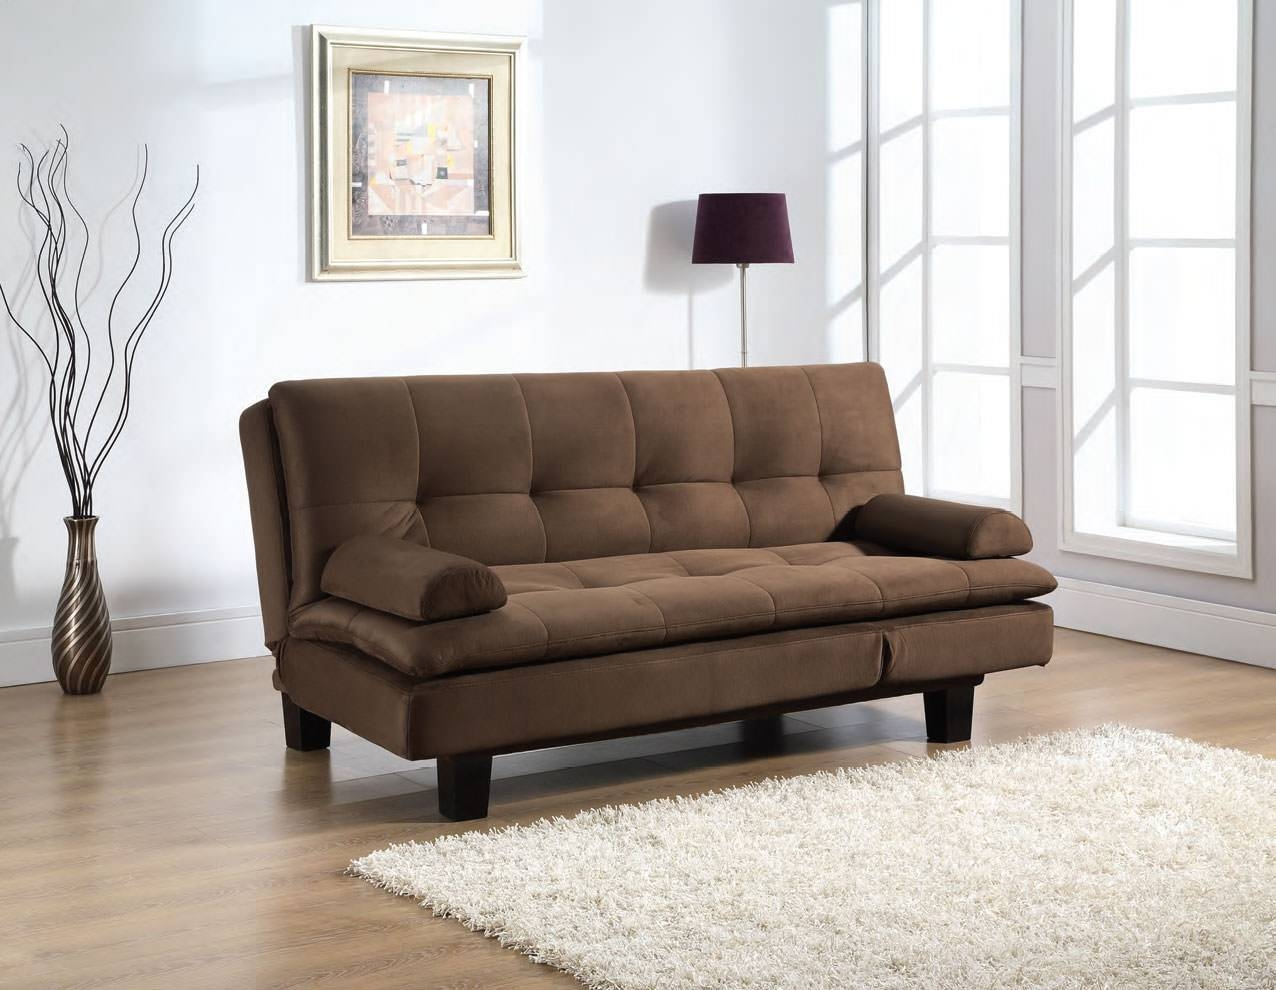 Chair Furniture Comfortable Serta Convertible Sofa Bed Armless Regarding Sofa Bed Chairs (View 6 of 30)